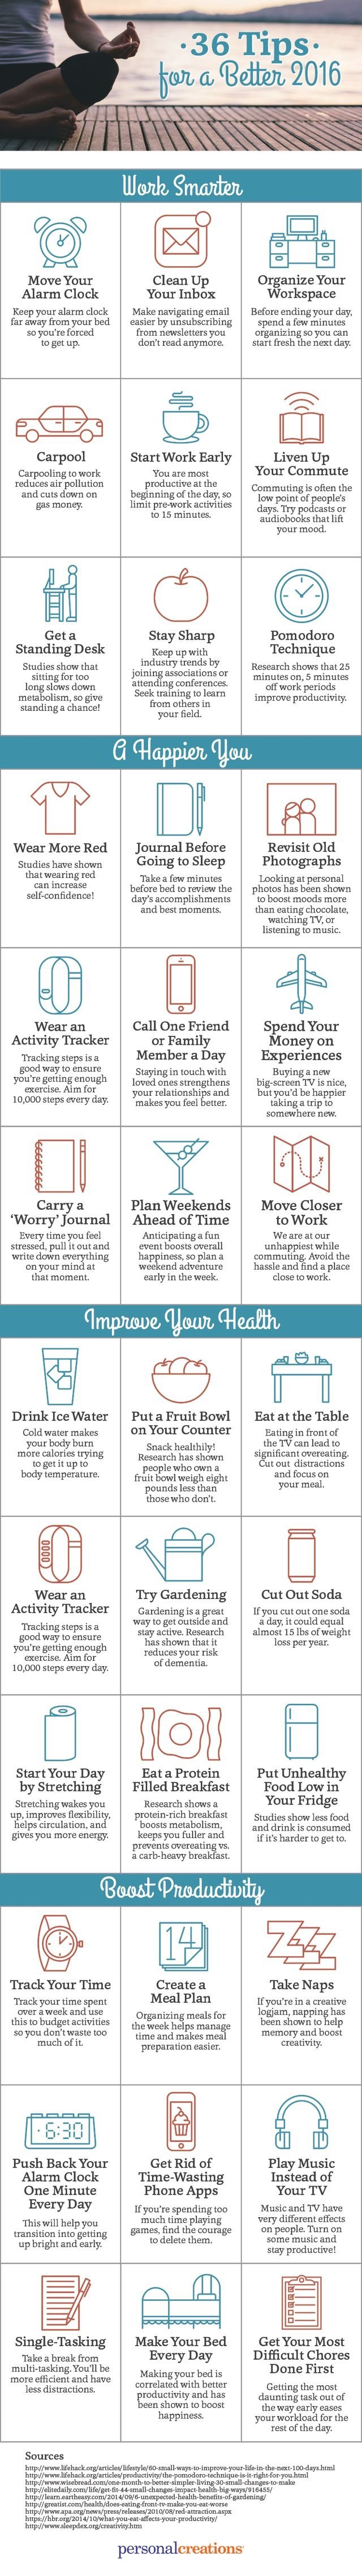 Thirty Six tips for a better 2016 #Infographic